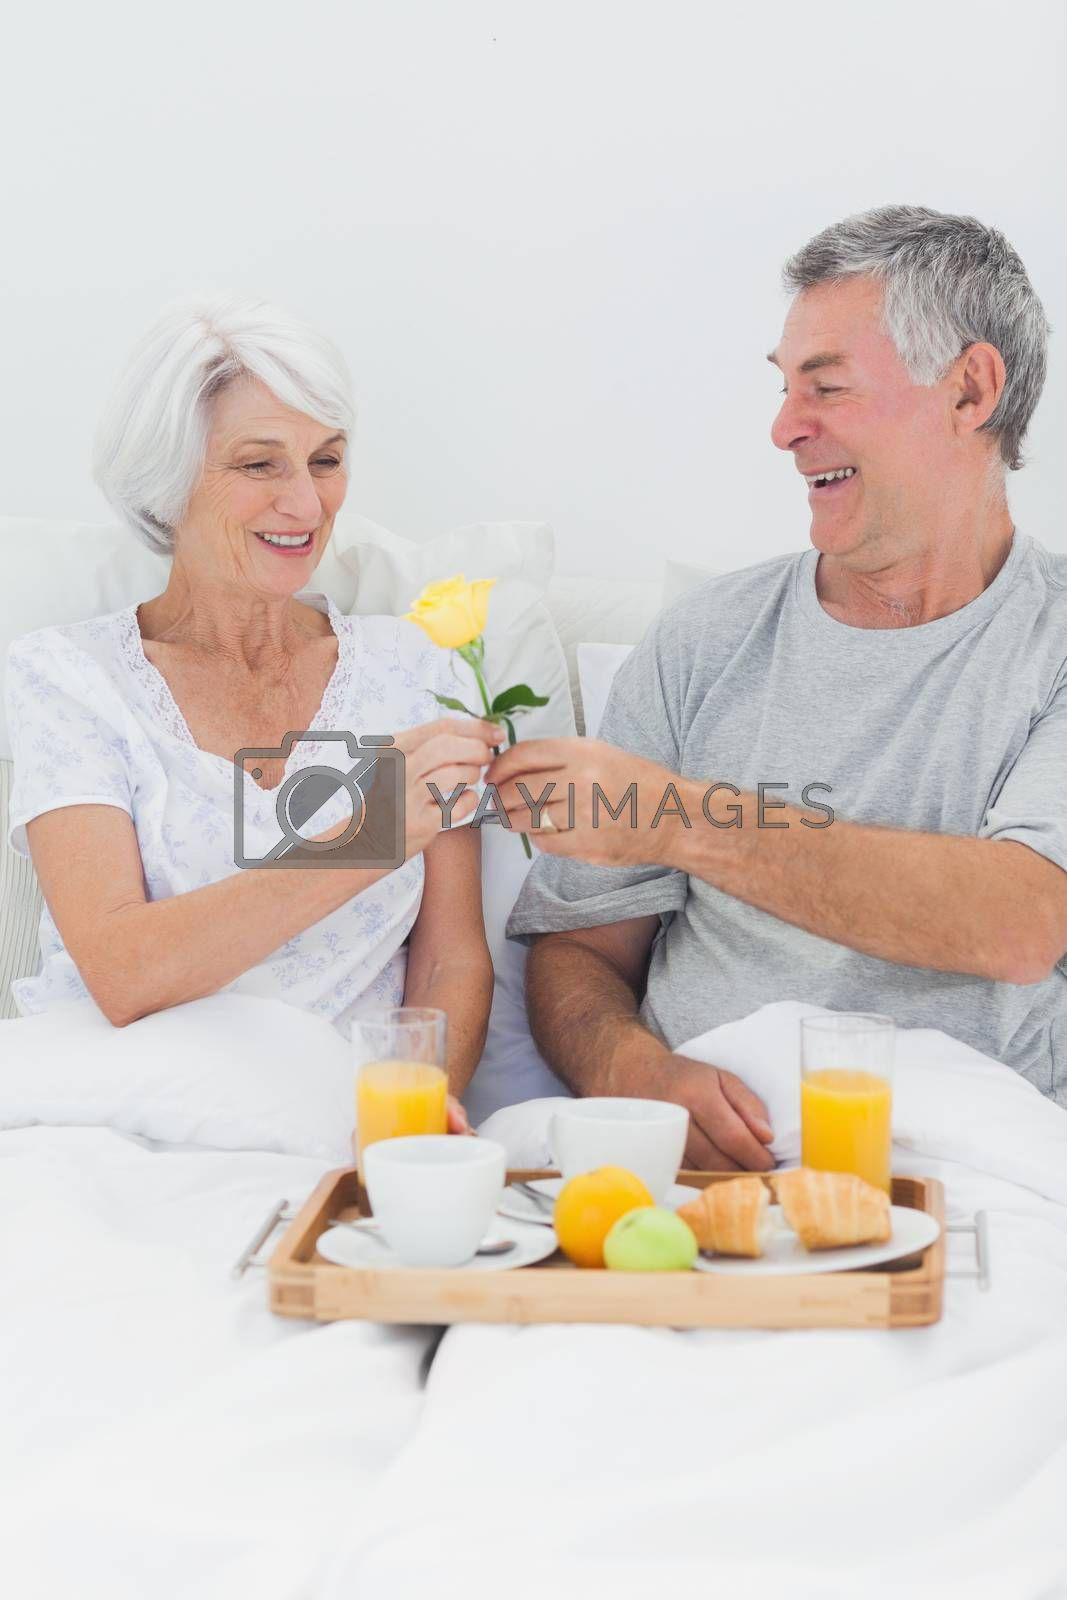 Man giving wife a yellow rose while they are having breakfast in bed